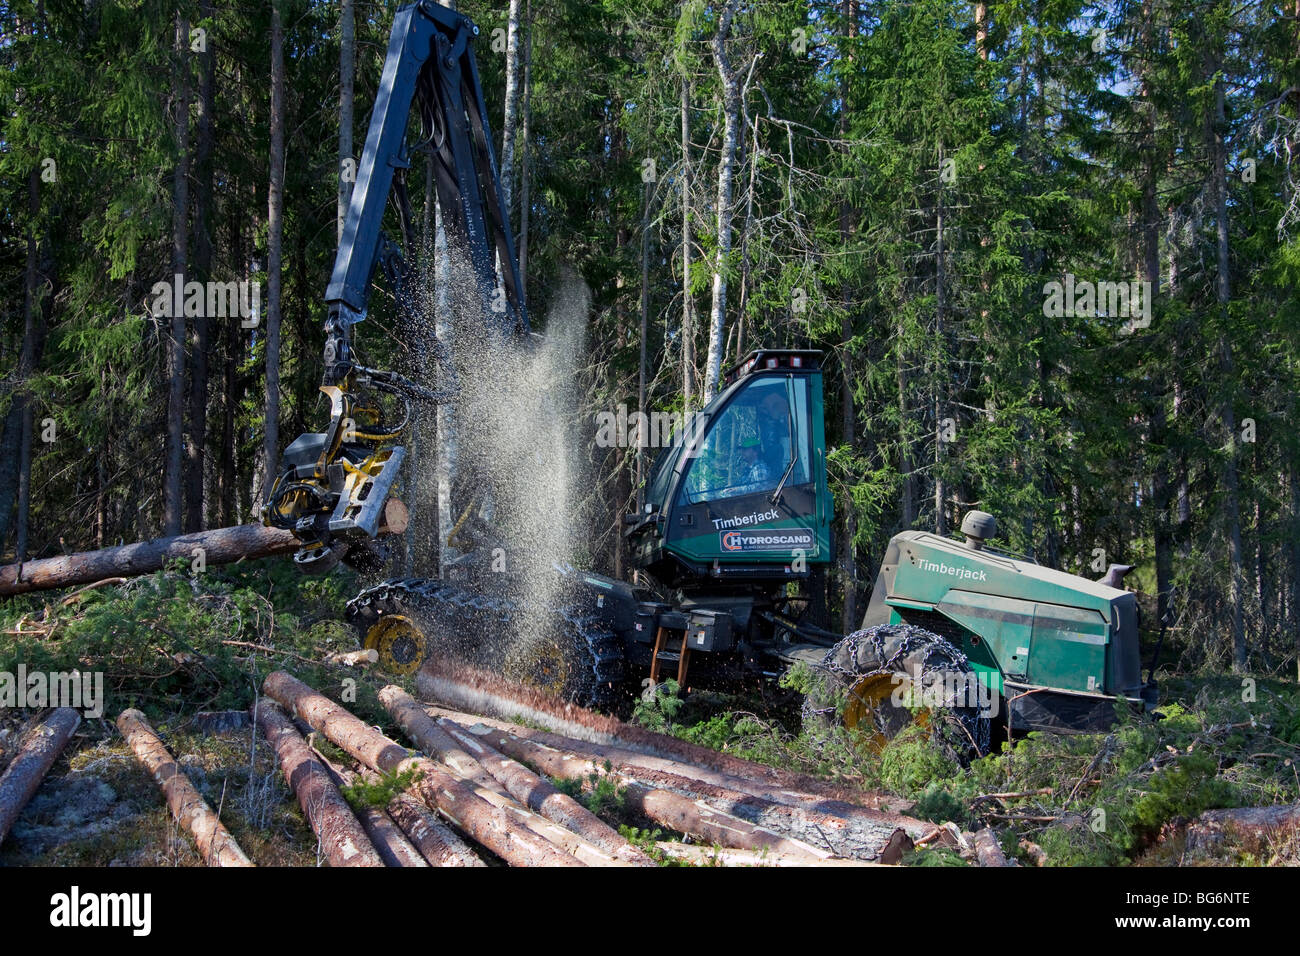 Logging industry showing timber / trees felled by forestry machinery / Timberjack harvester in pine forest - Stock Image